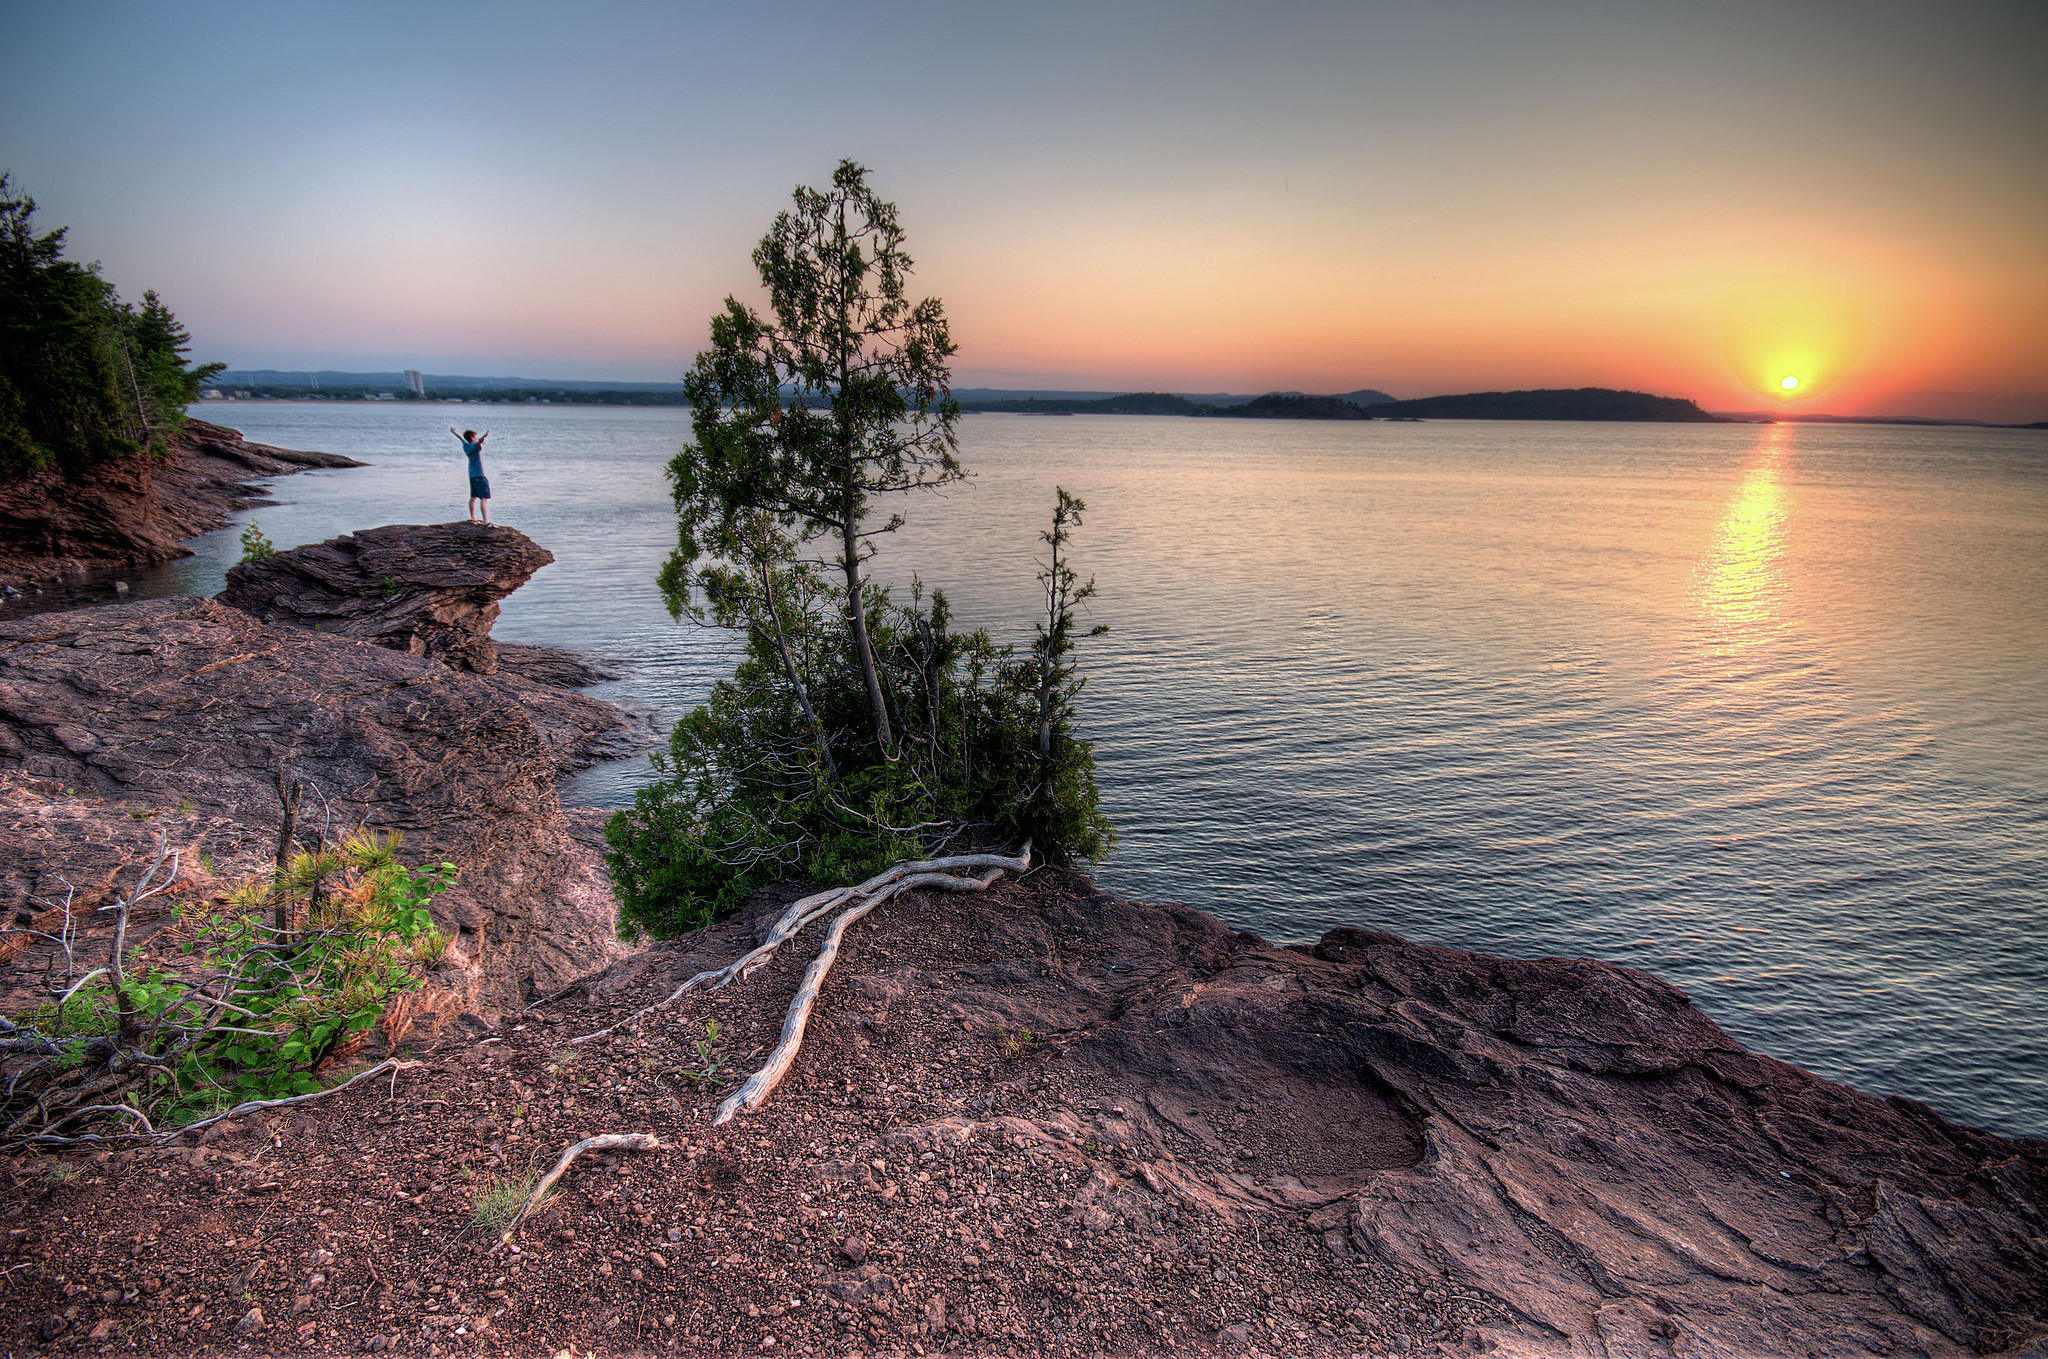 Lake Superior at sunset